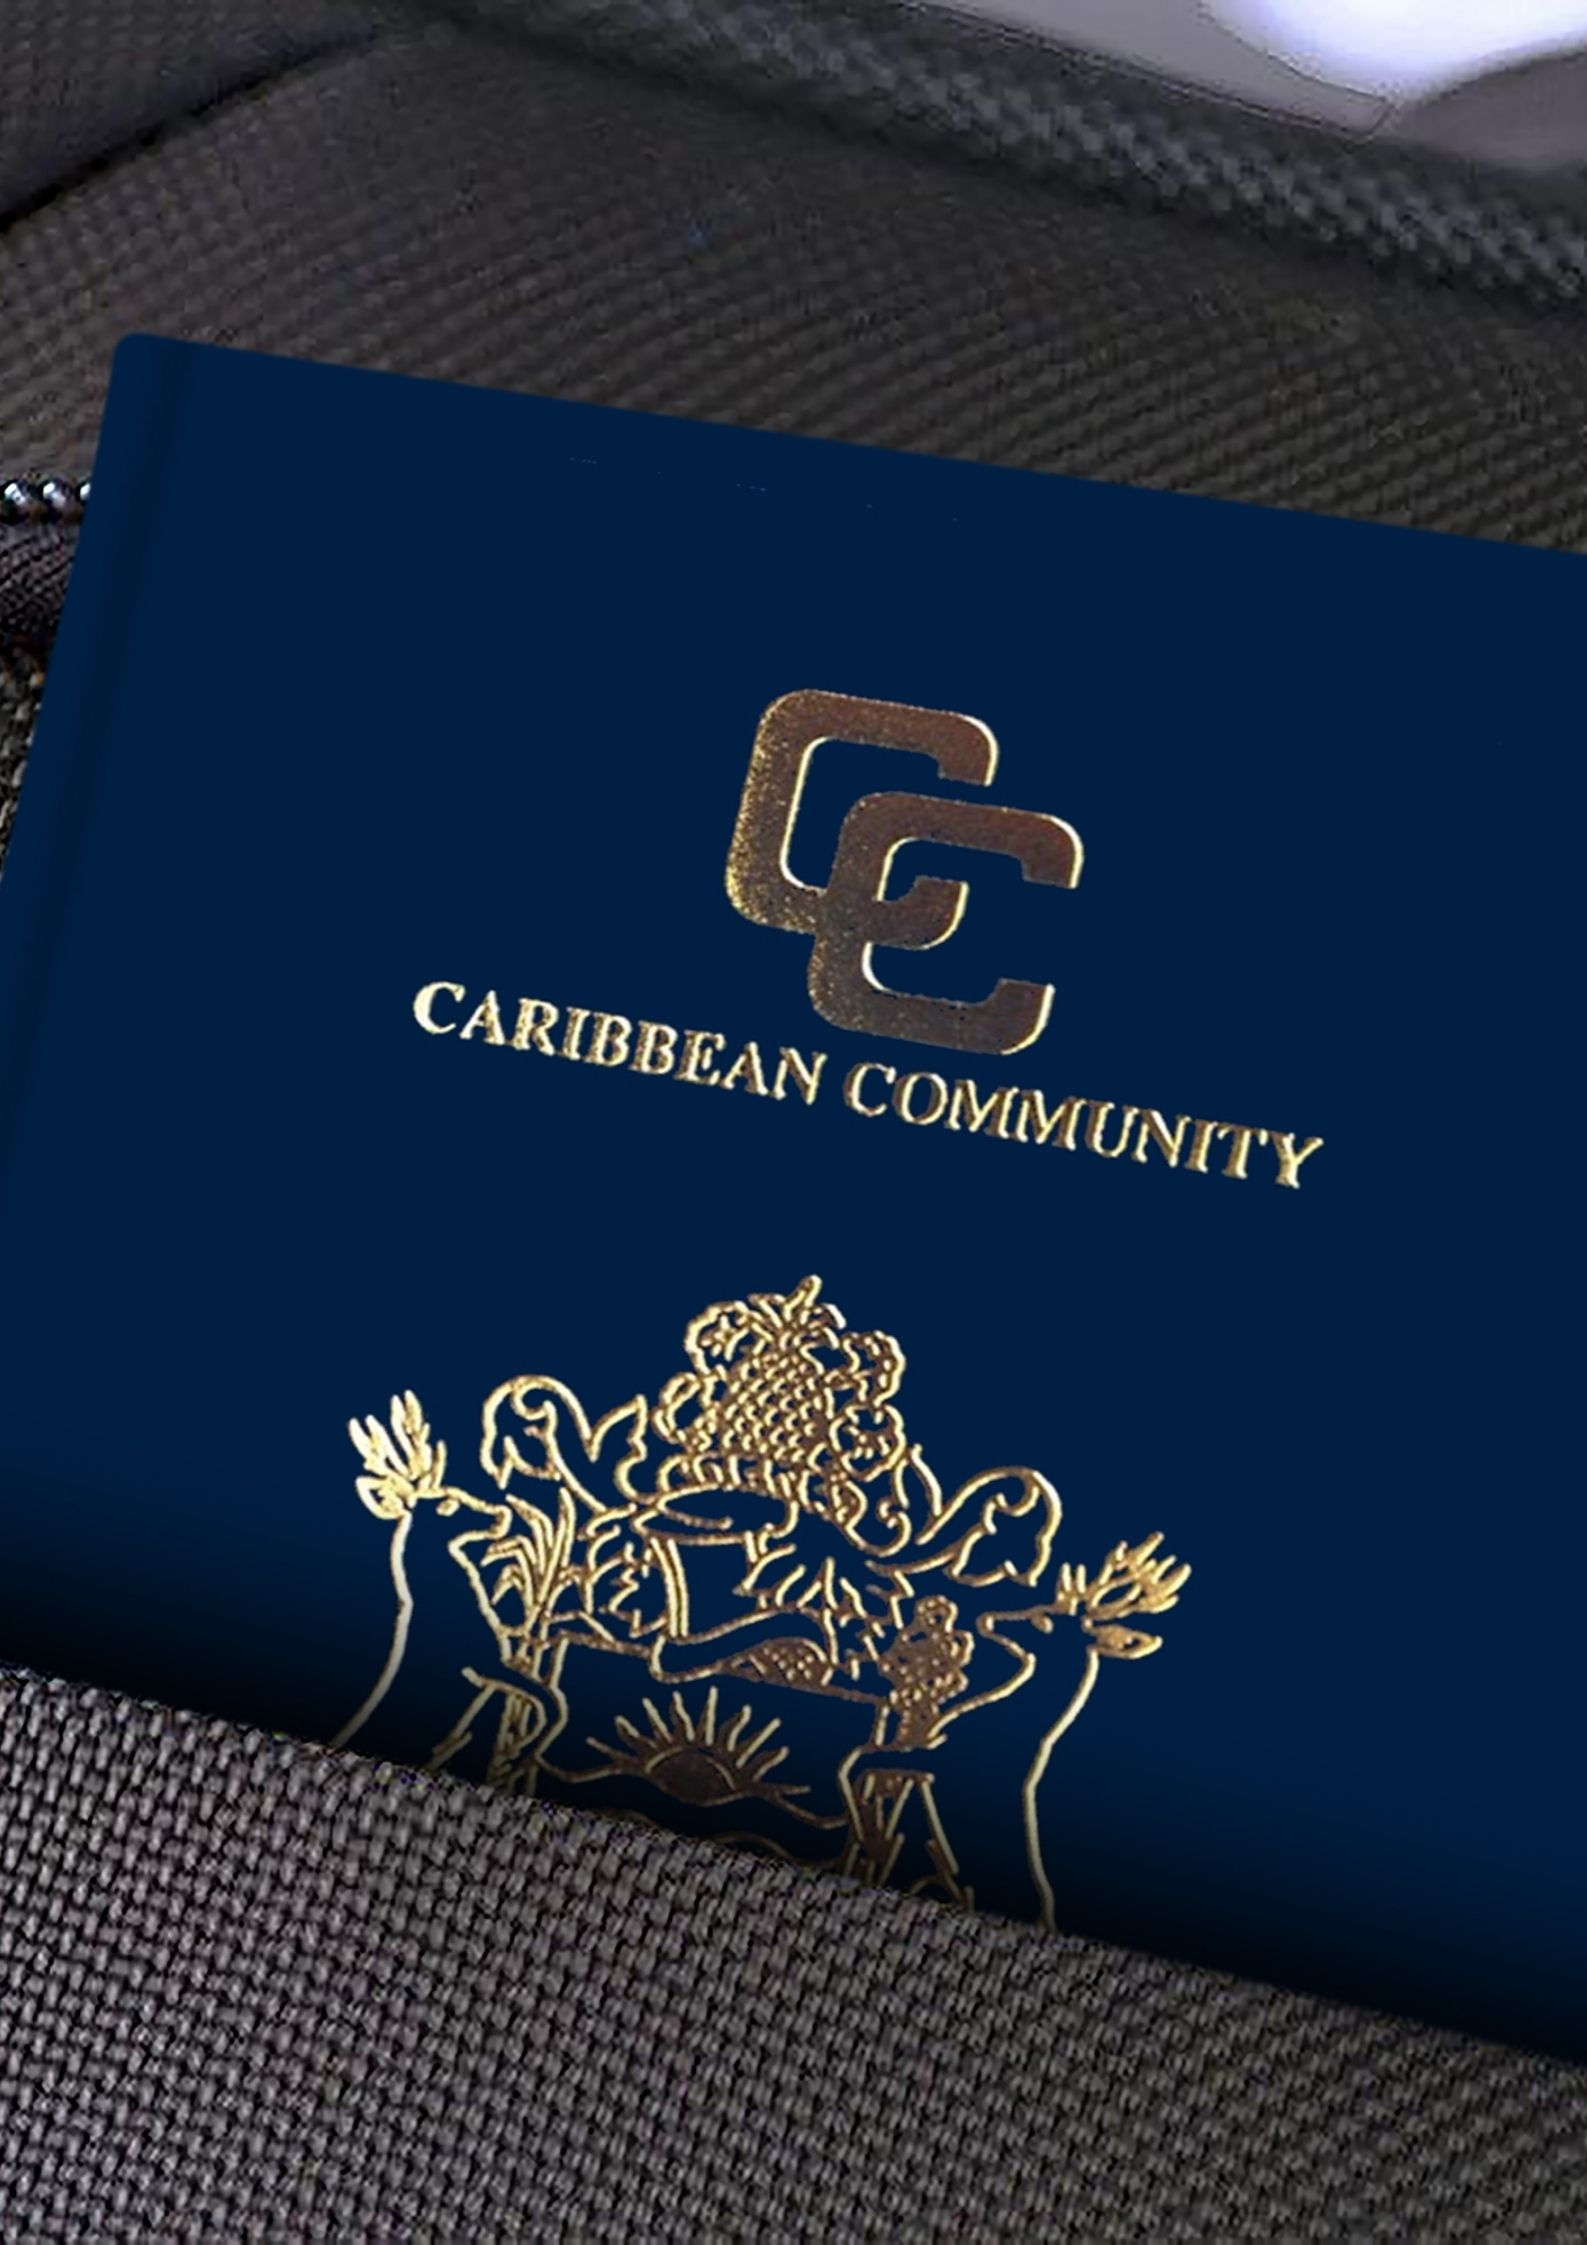 citizenship by investment caribbean